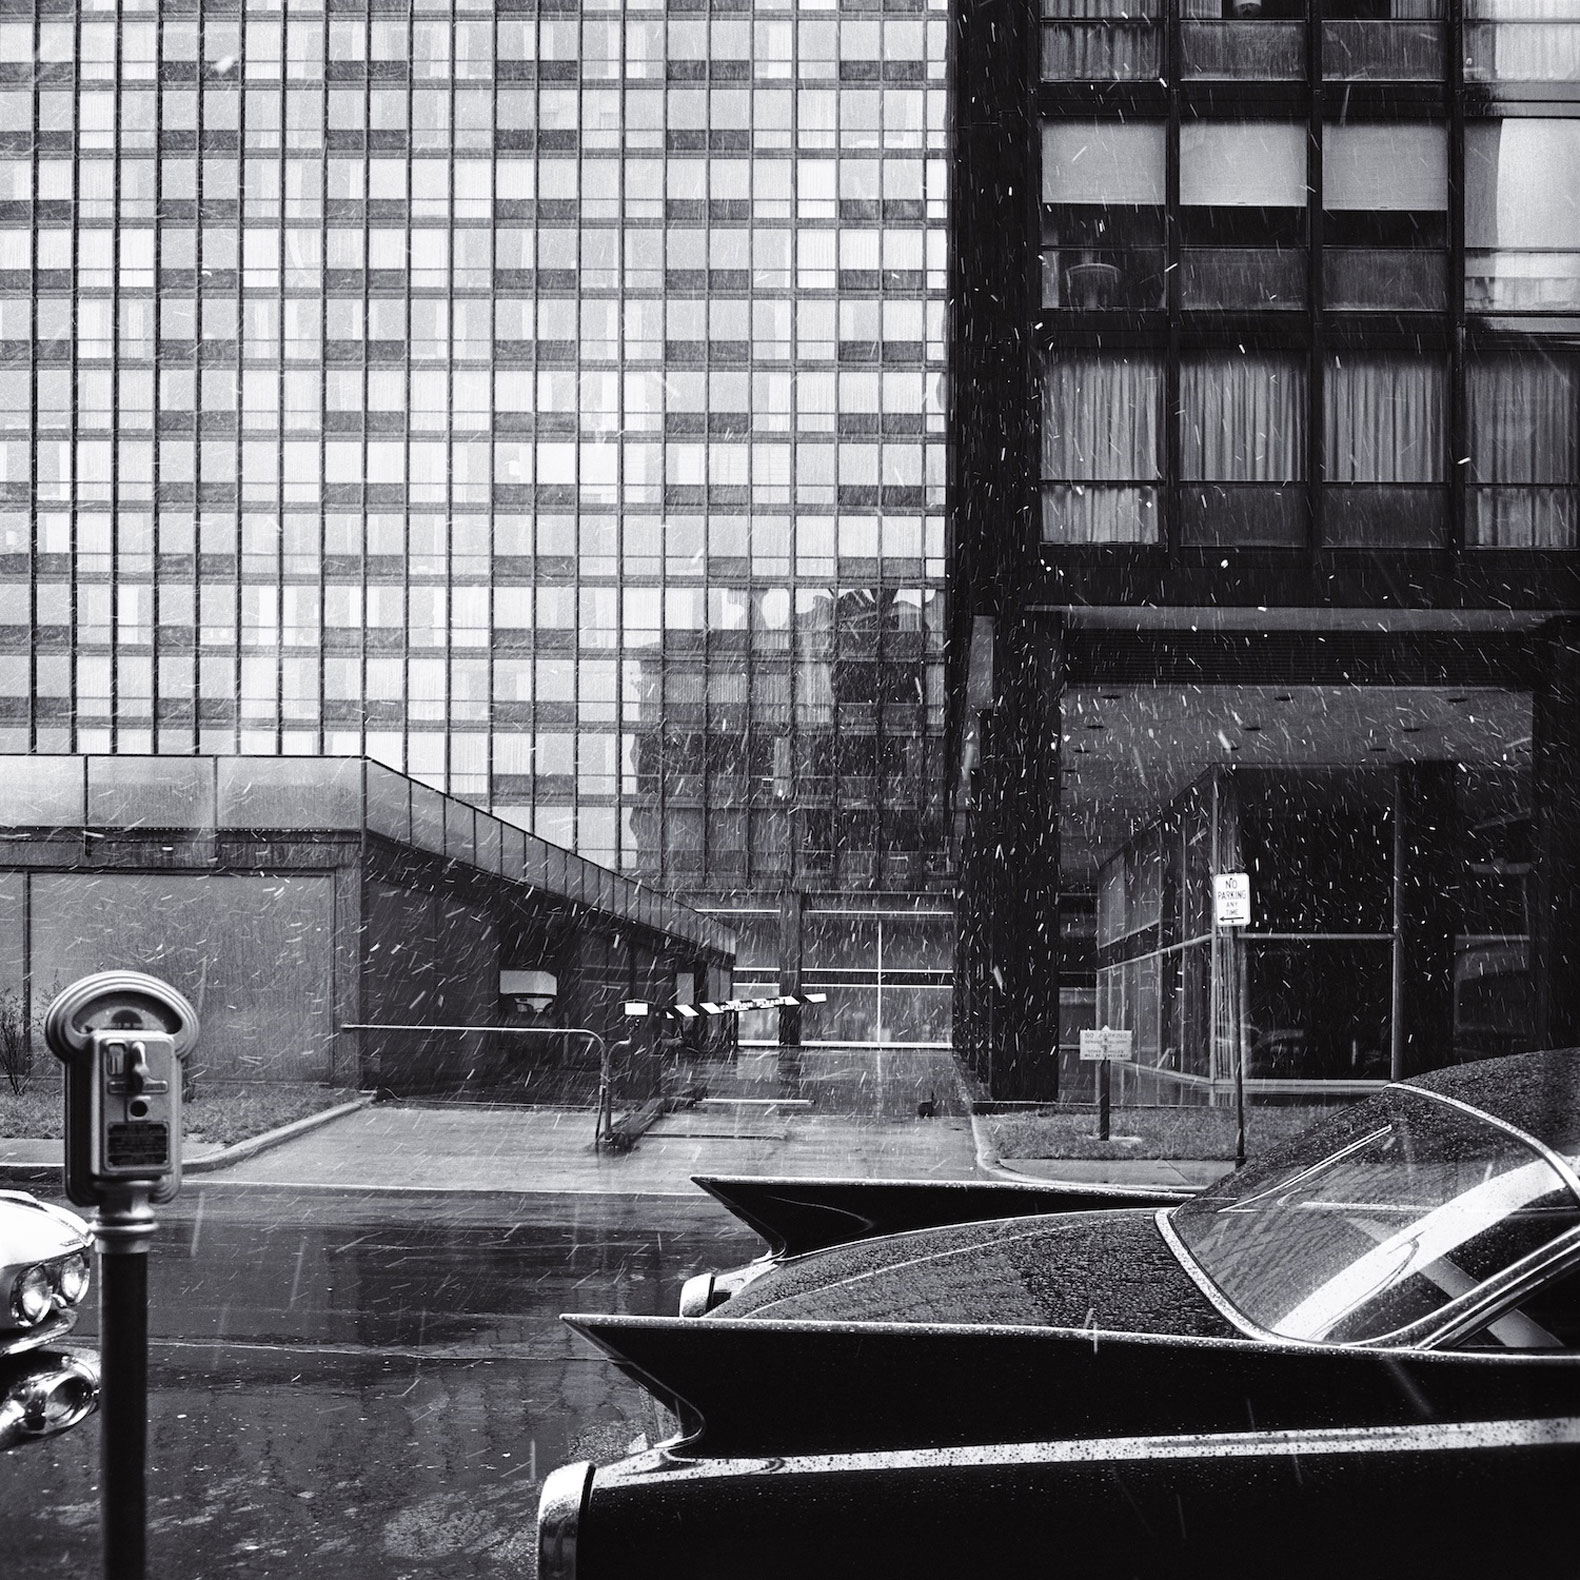 Balthazar Korab (Hungarian, 1926–2013), 860–880 Lake Shore Drive Apartments, Chicago, IL, 1960. Chromogenic print with metallic paper base, 11 x 11 inches. Courtesy Korab Image, Christian Korab, Minnesota. © 2018 Korab Image.